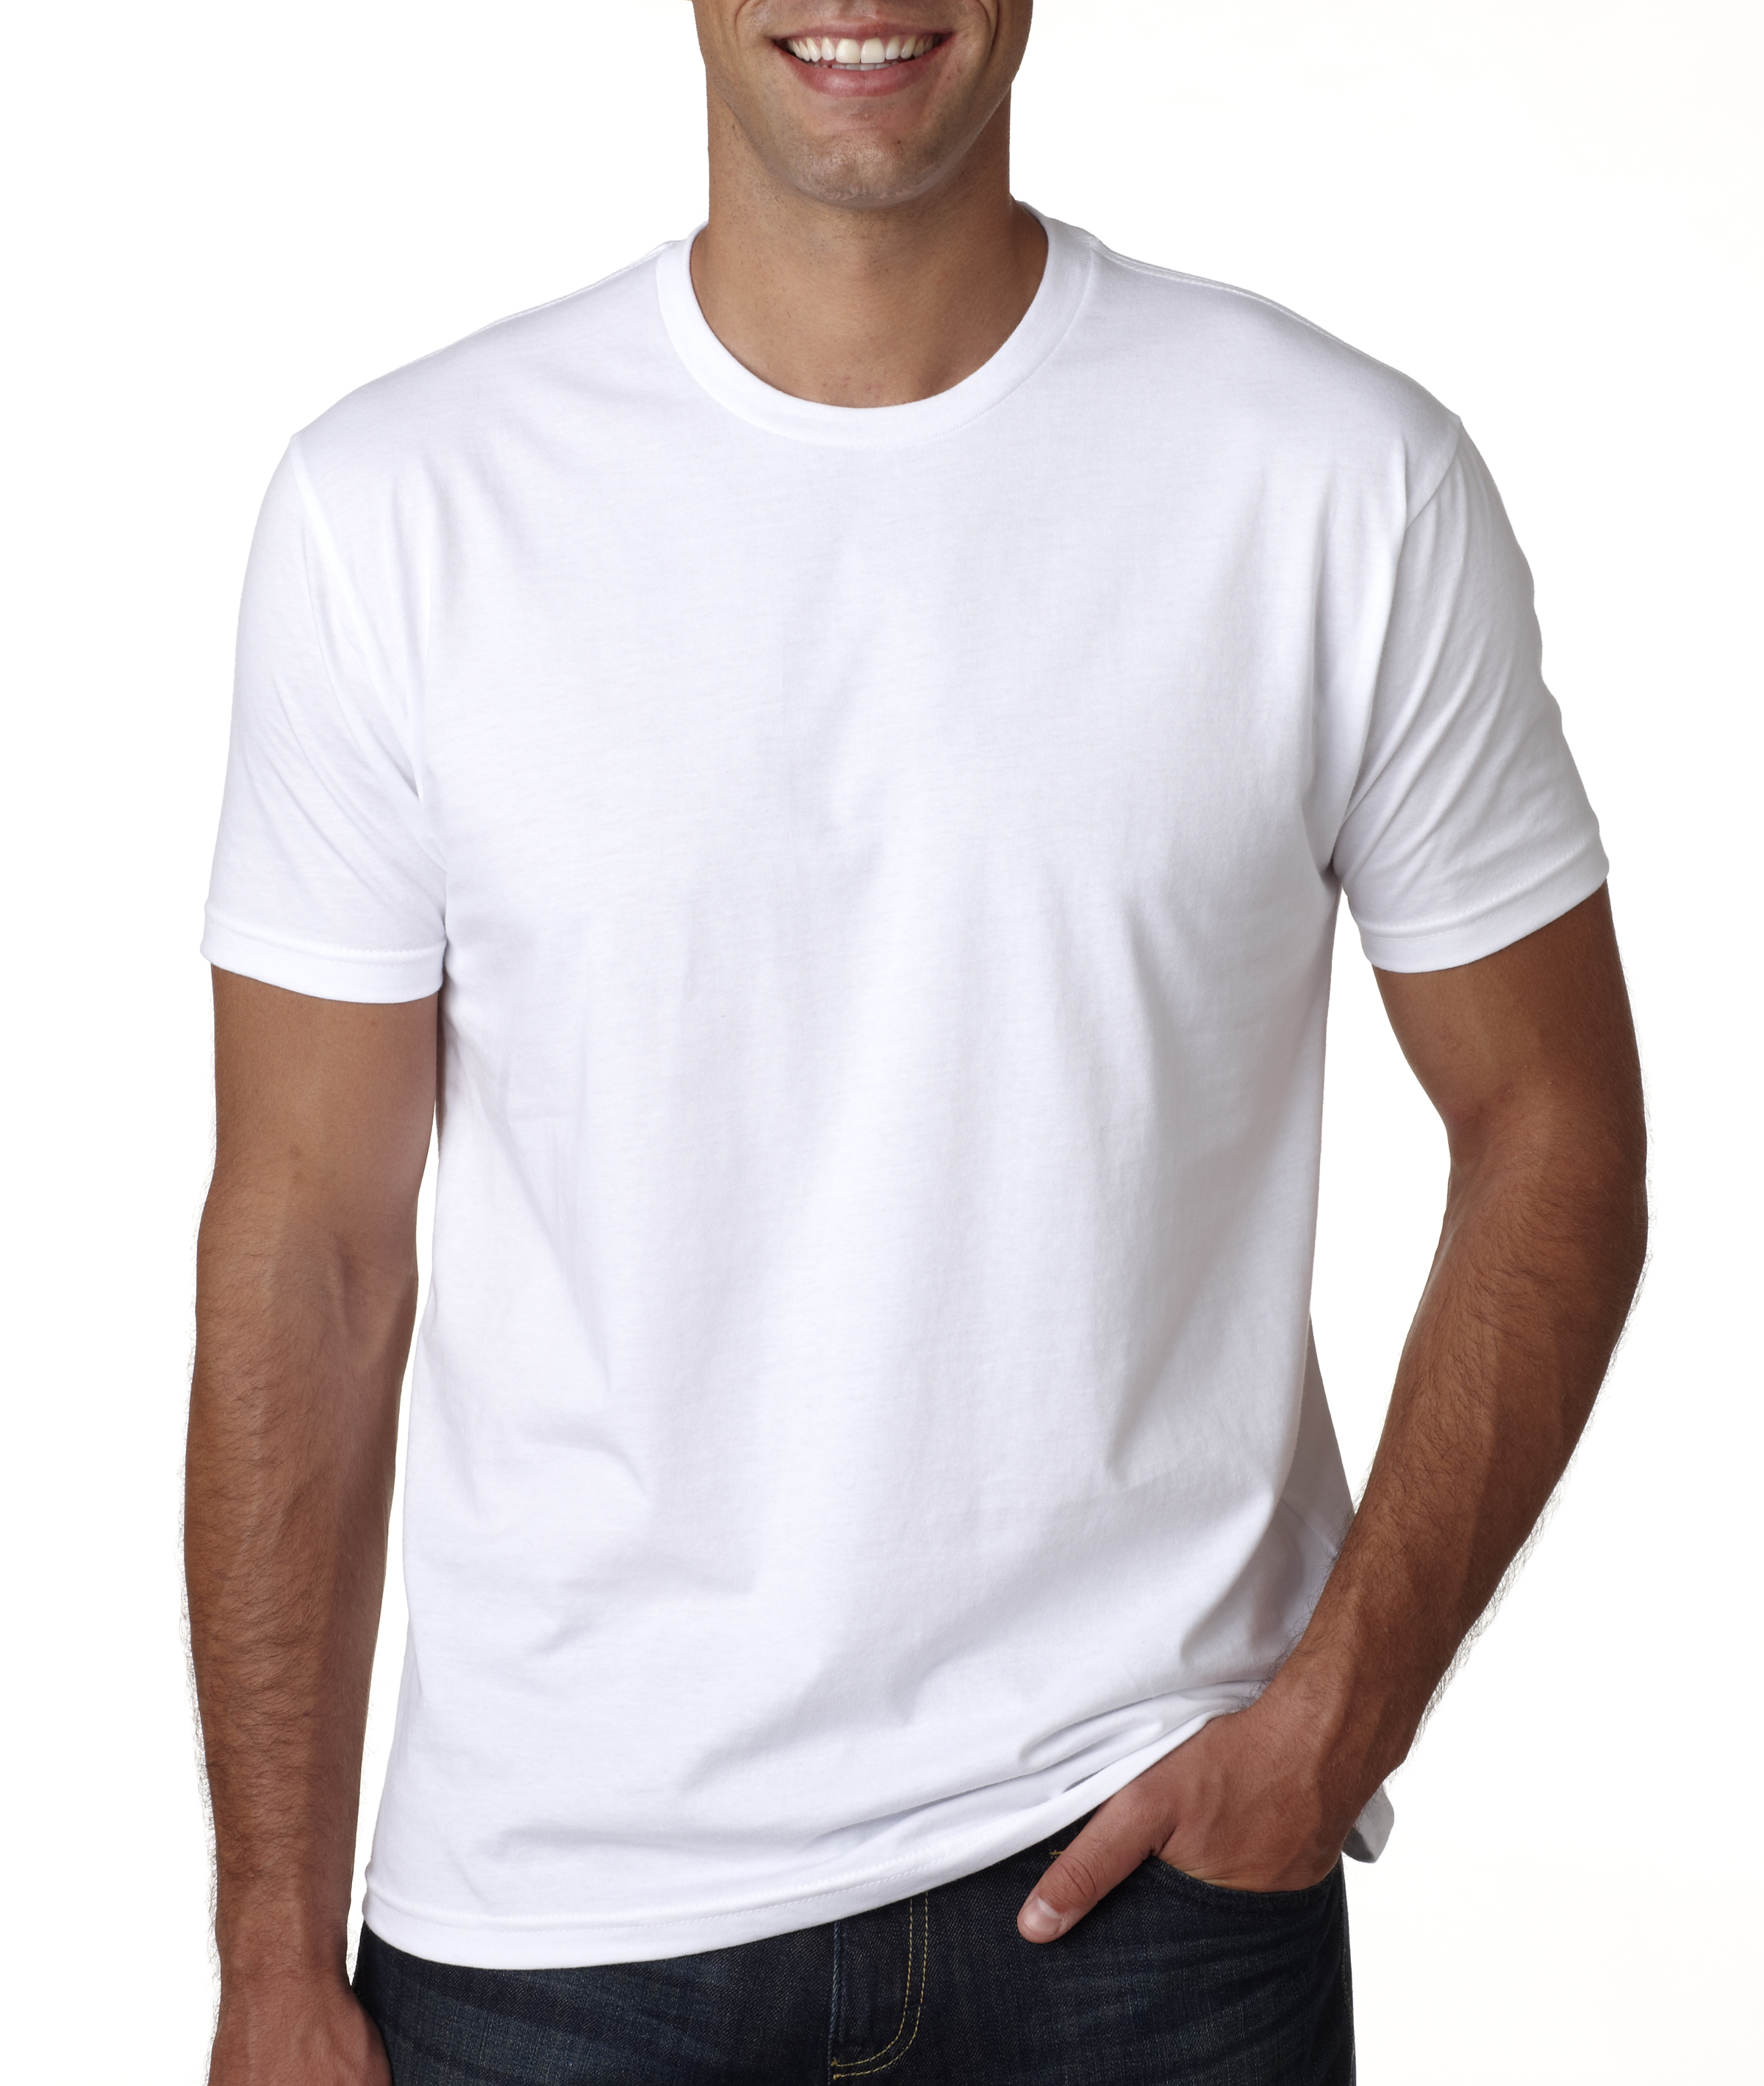 50 custom printed white t shirts on storenvy for Print photo on shirt